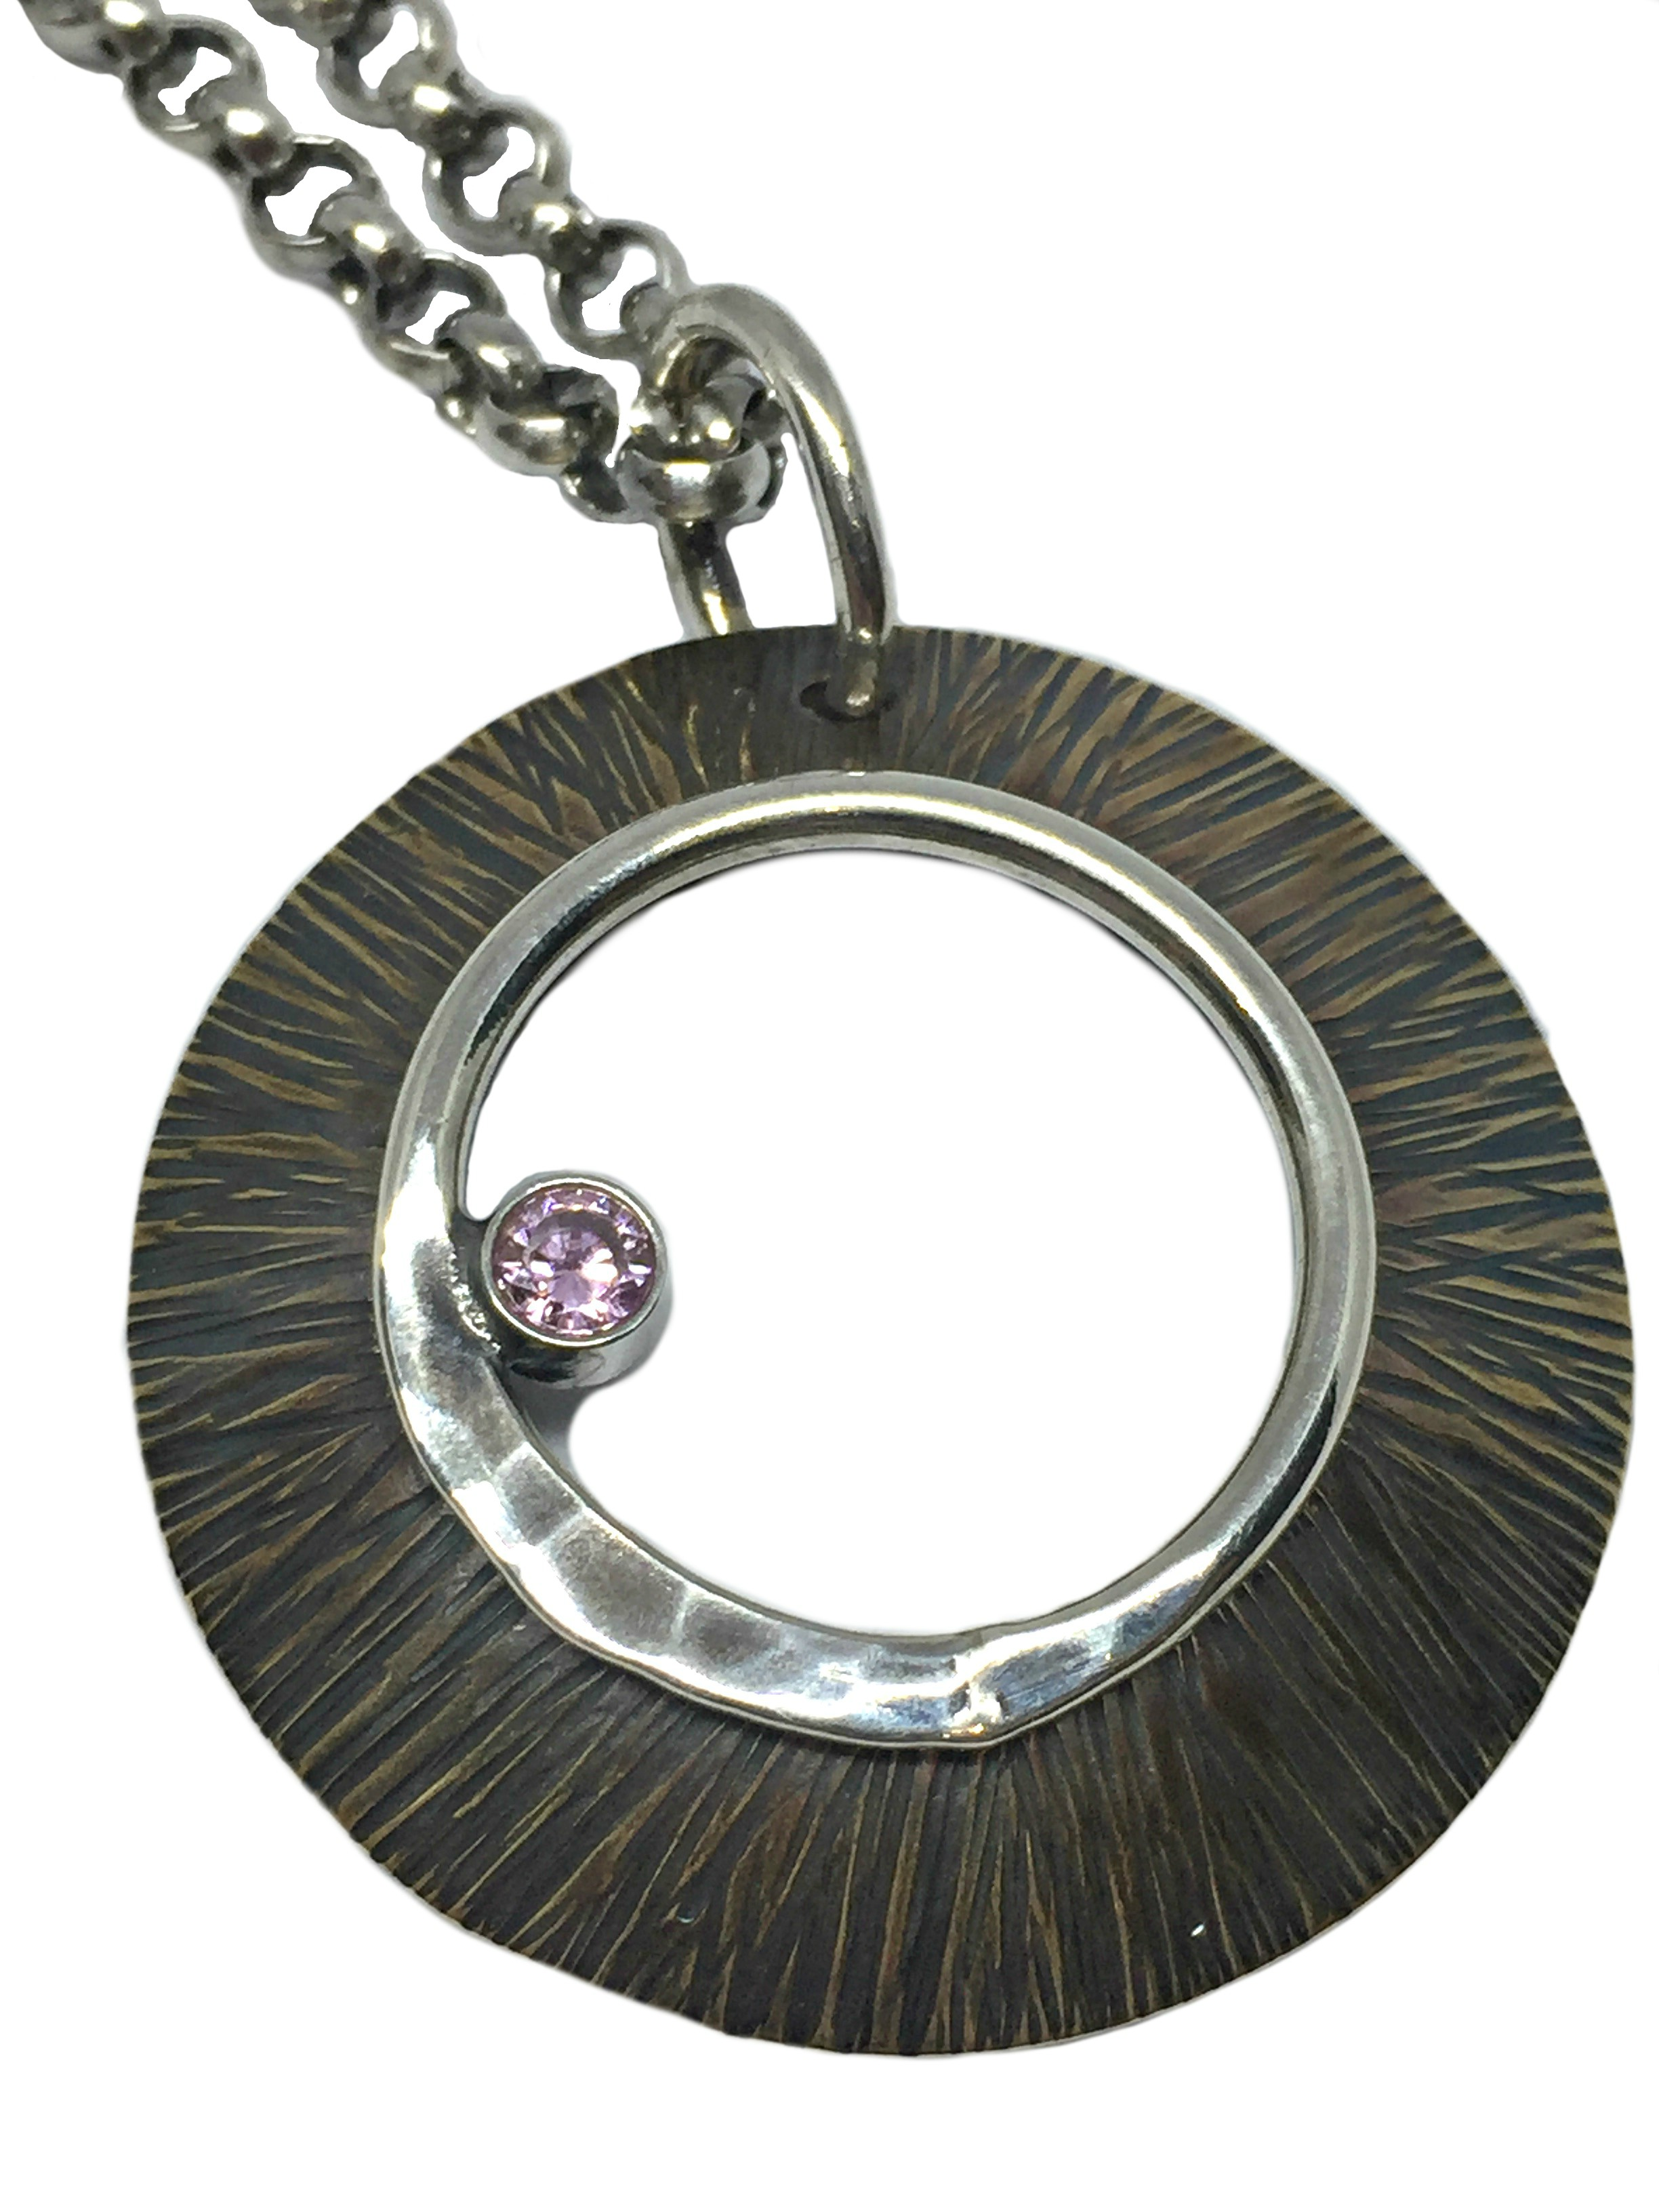 Bronze, sterling silver, + pink CZ pendant by Karyn Chopik | Effusion Art Gallery + Cast Glass Studio, Invermere BC